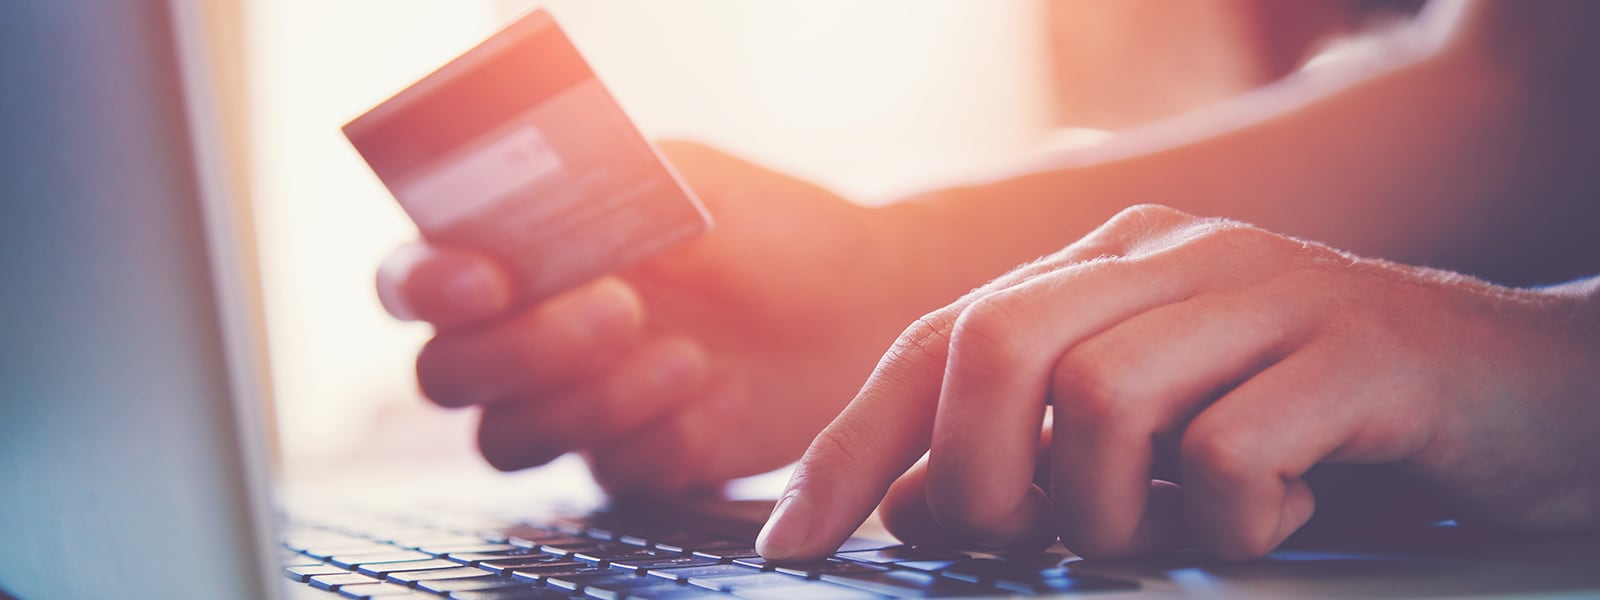 Close-Up of Person Completing an Online Purchase with Credit Card and Laptop | Woodruff